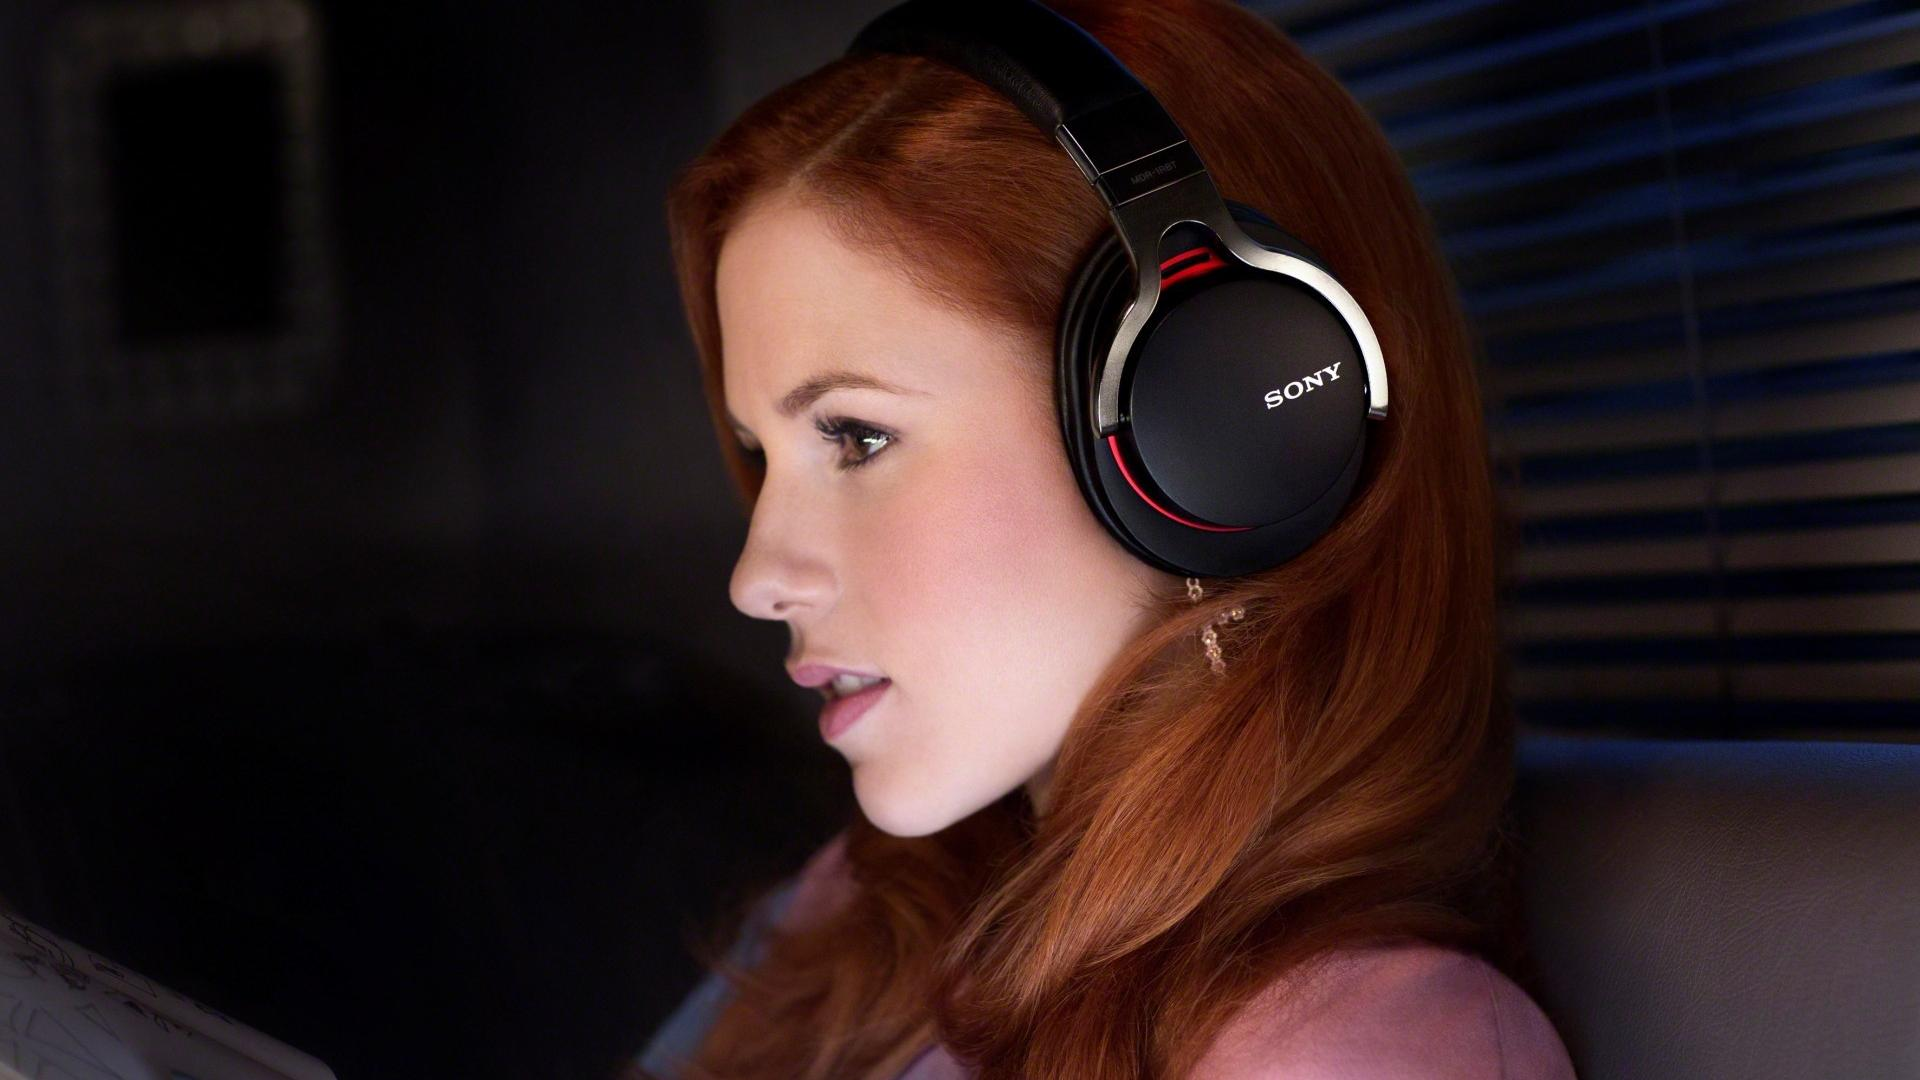 https://on-desktop.com/ru/images/wp.php?path=/wps/Girls_Red-haired_girl_listening_to_music_095385_.jpg&wp=9